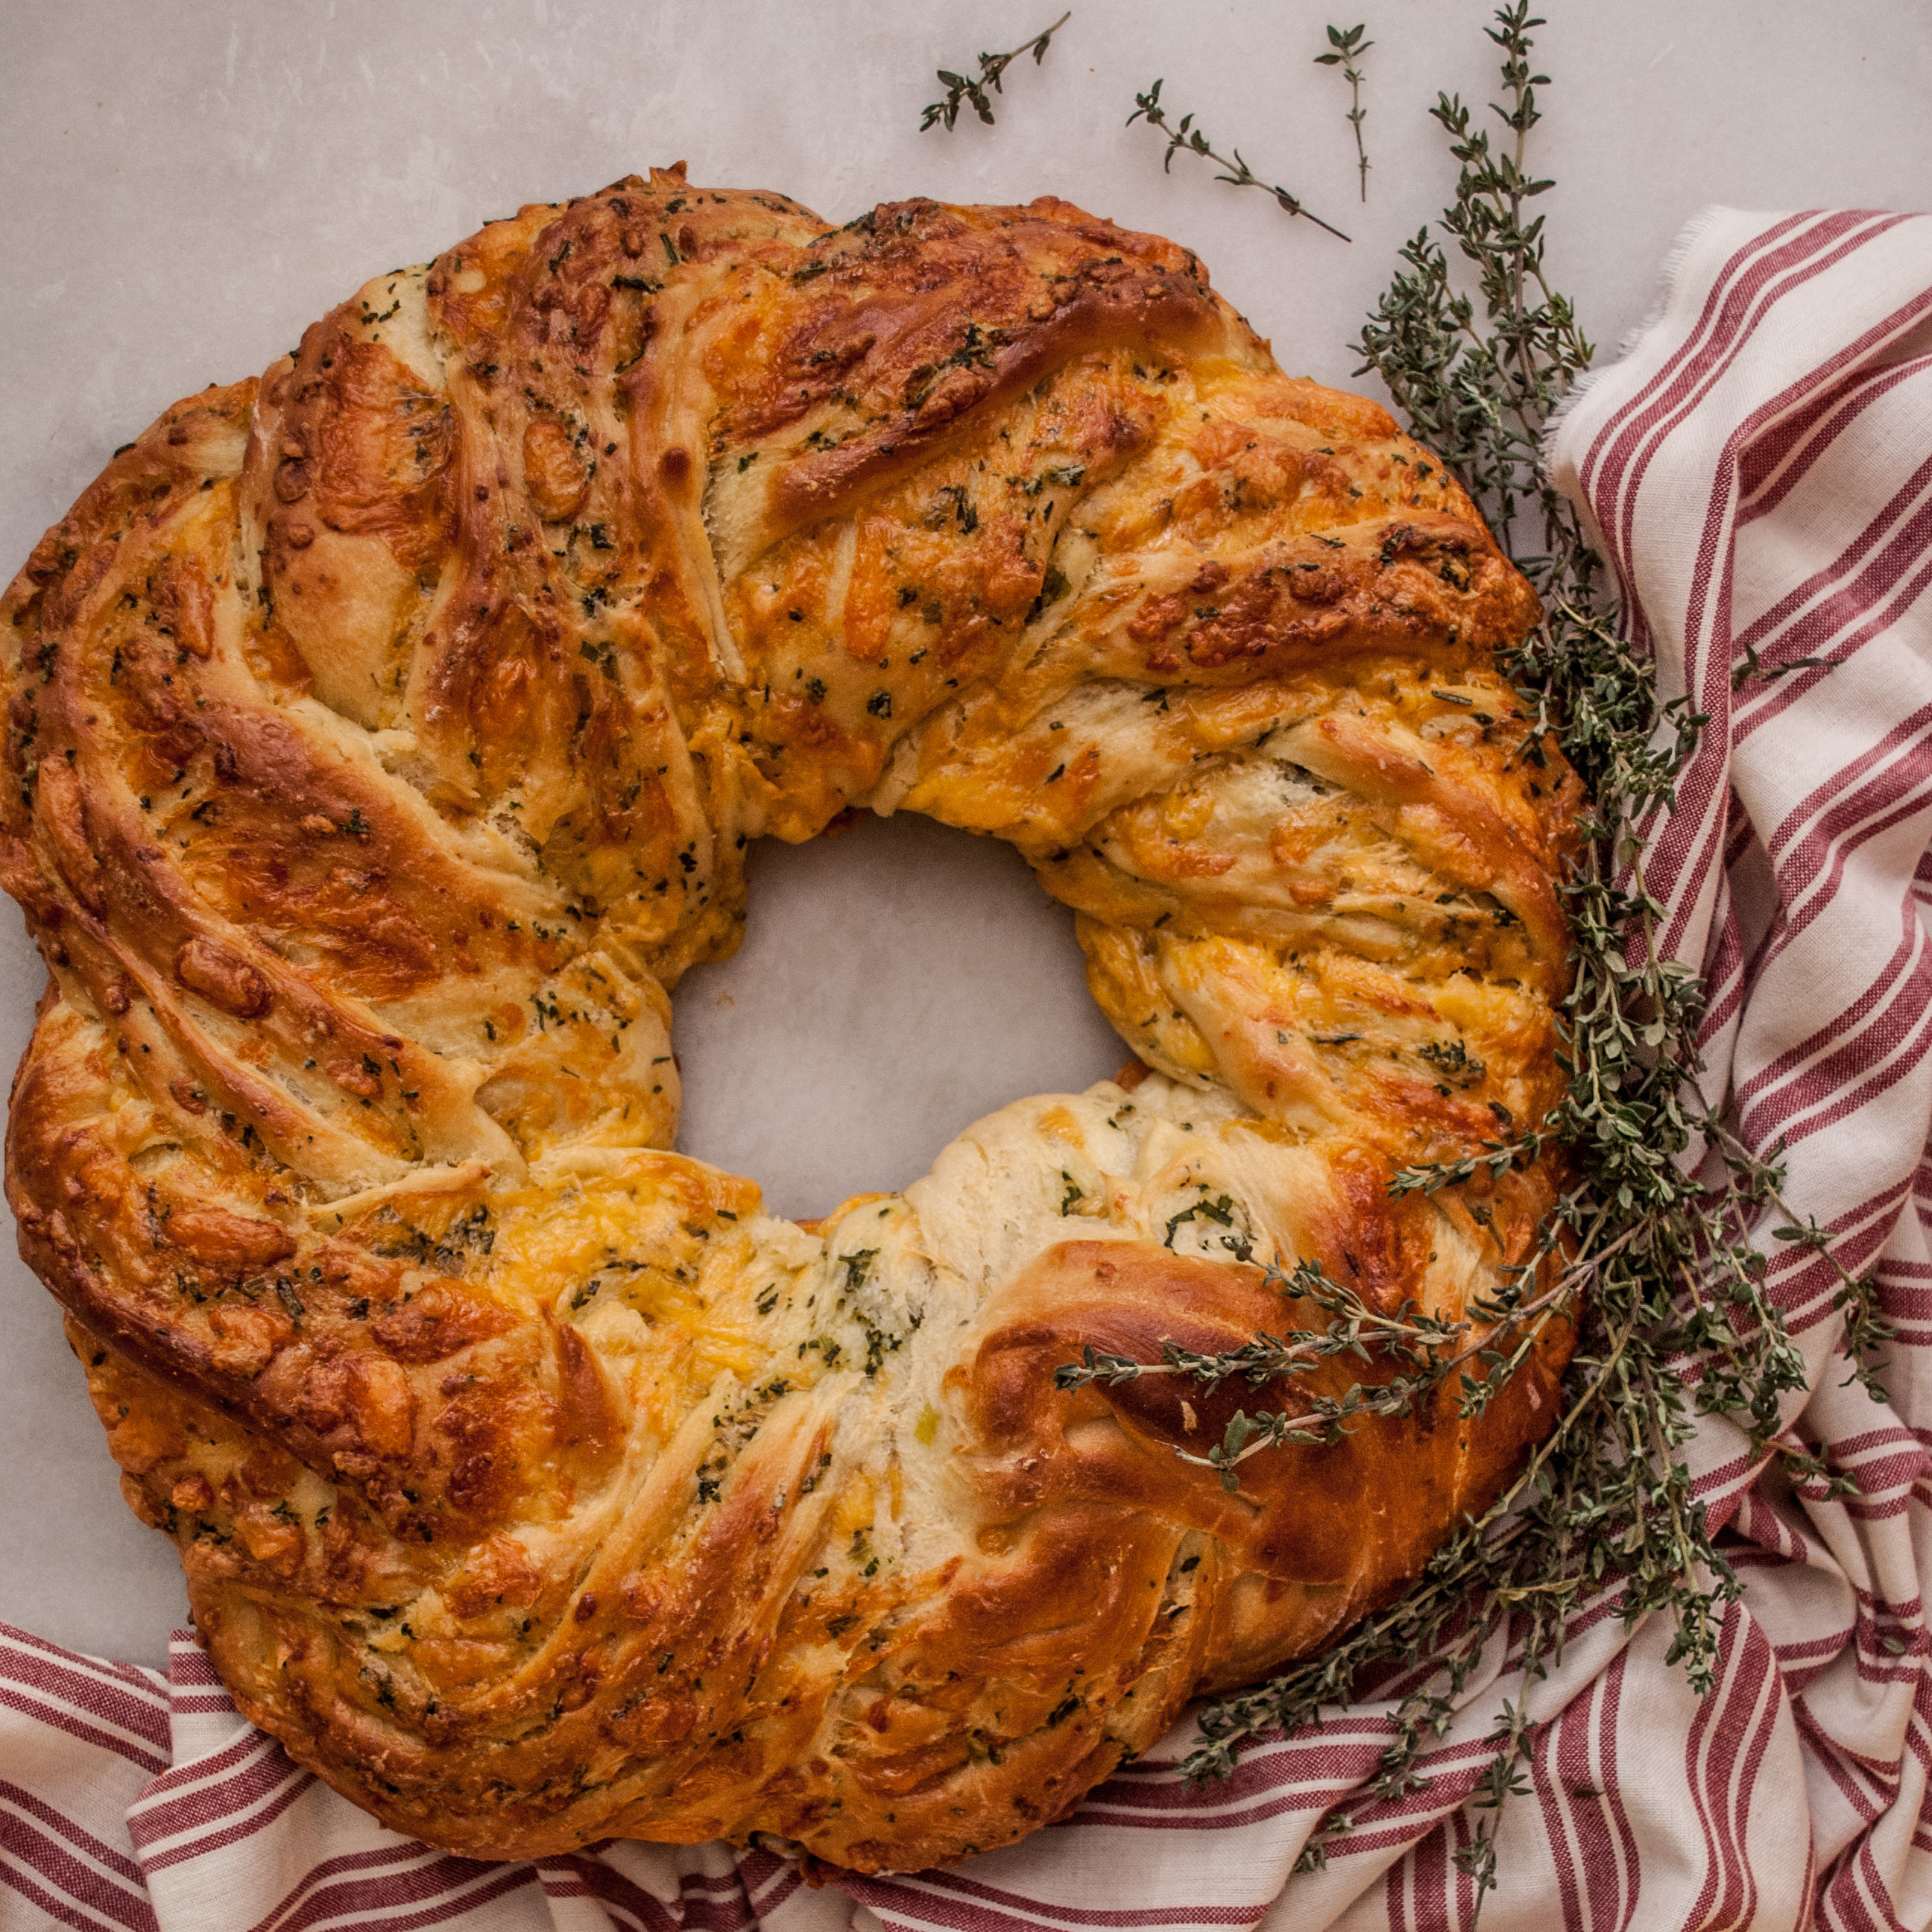 Easy Bread Recipe. Instructions and tutorial for this Herb & Cheddar Wreath. Perfect for Thanksgiving bread, Christmas bread, Holiday Baking, or any occasion! Cute Printable Recipe, too!